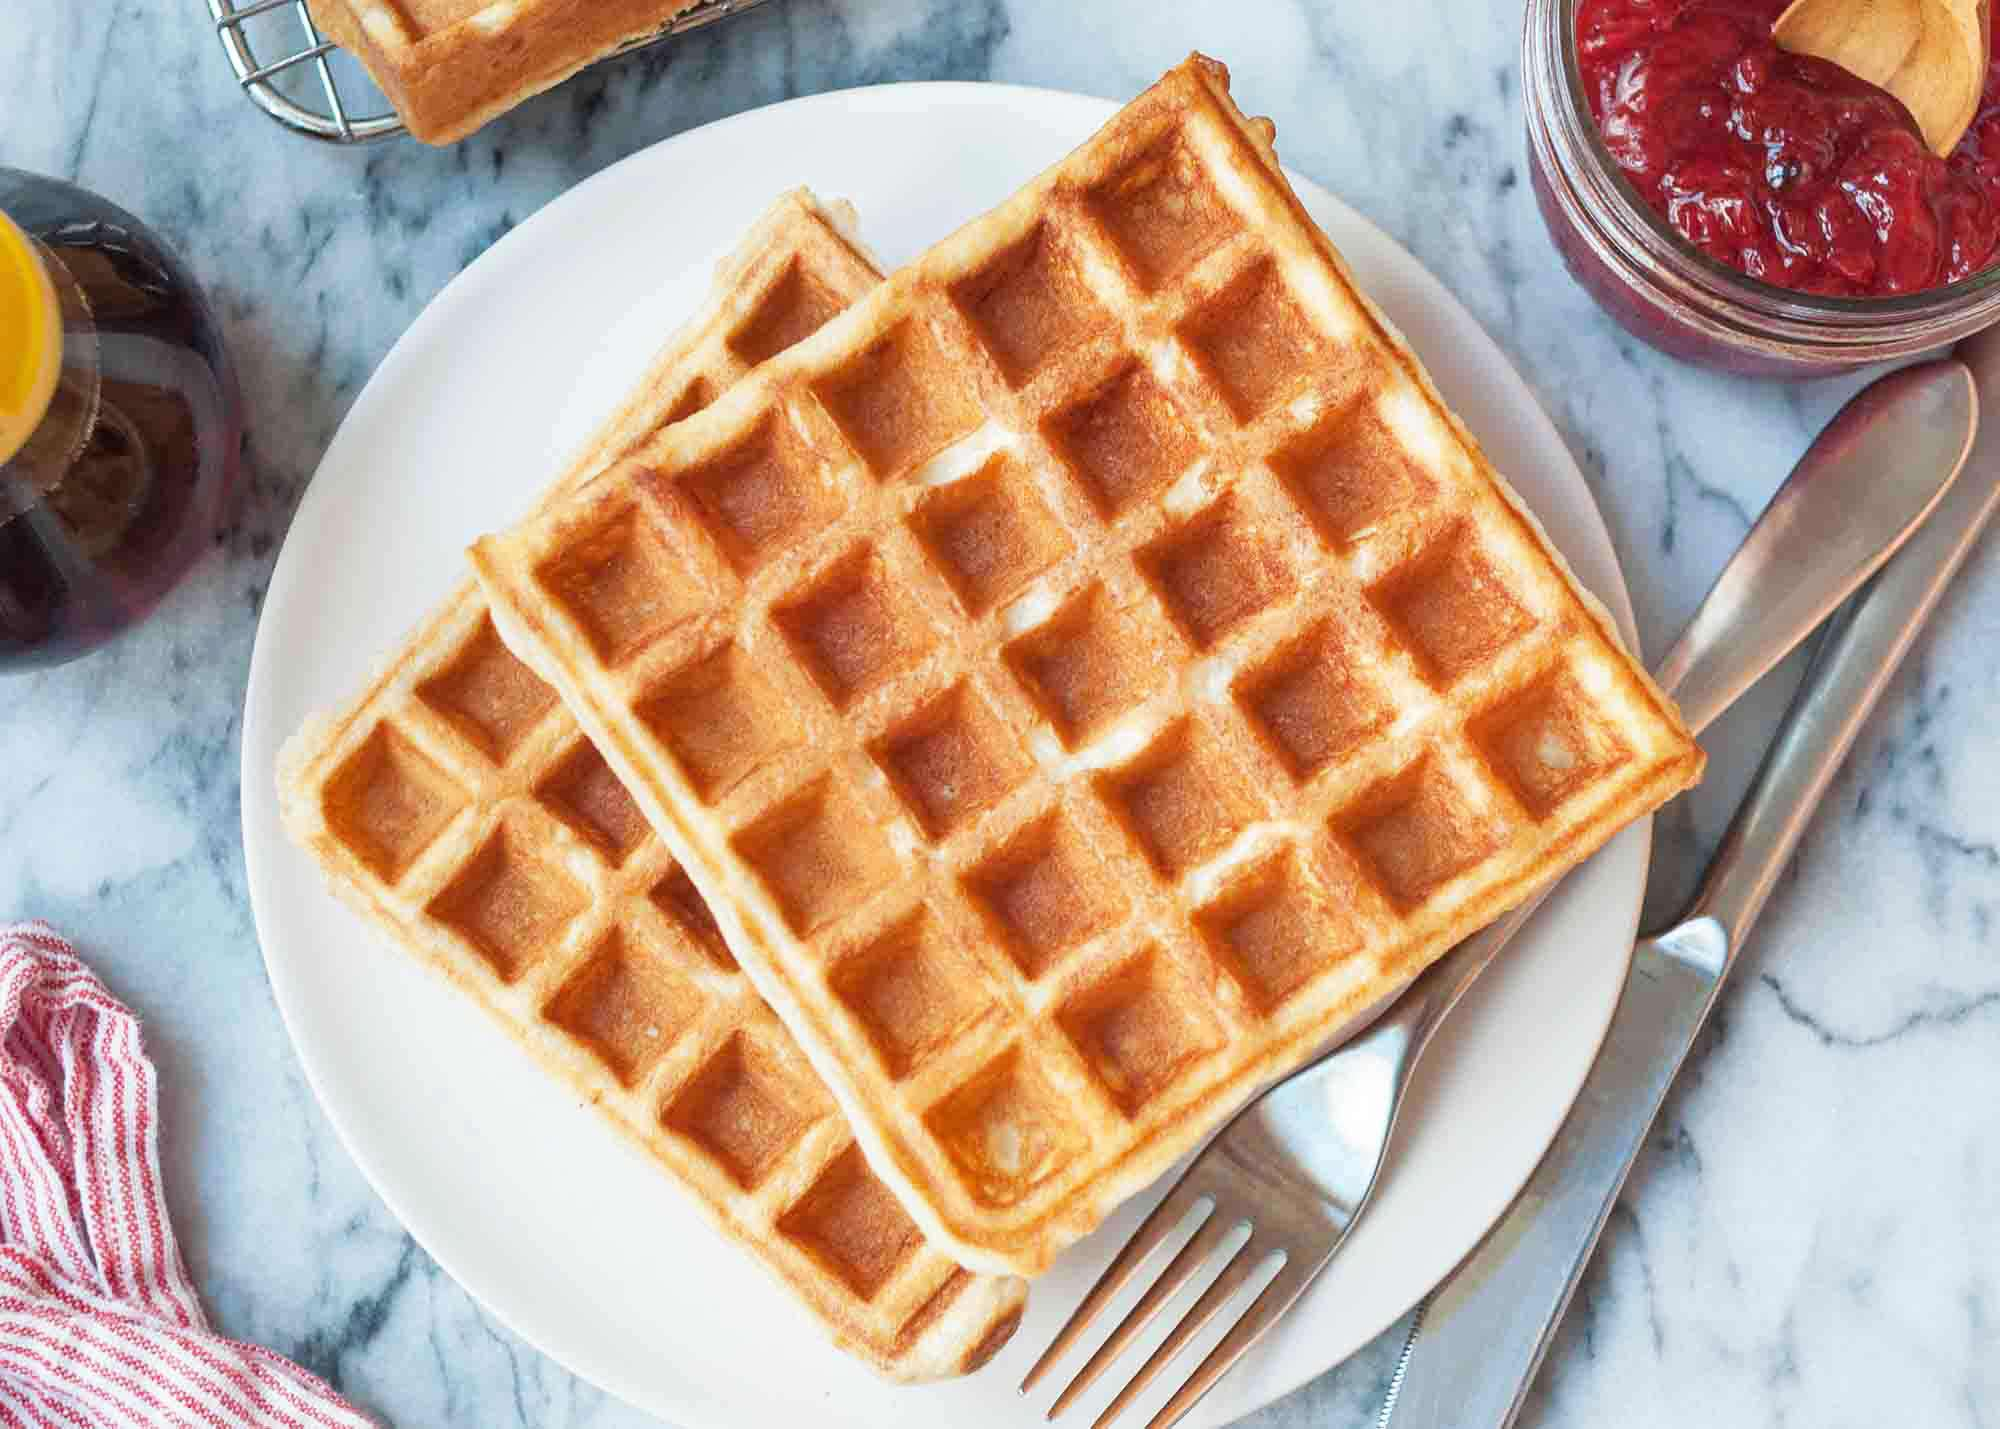 Easy waffle recipe served on a round plate with maple syrup